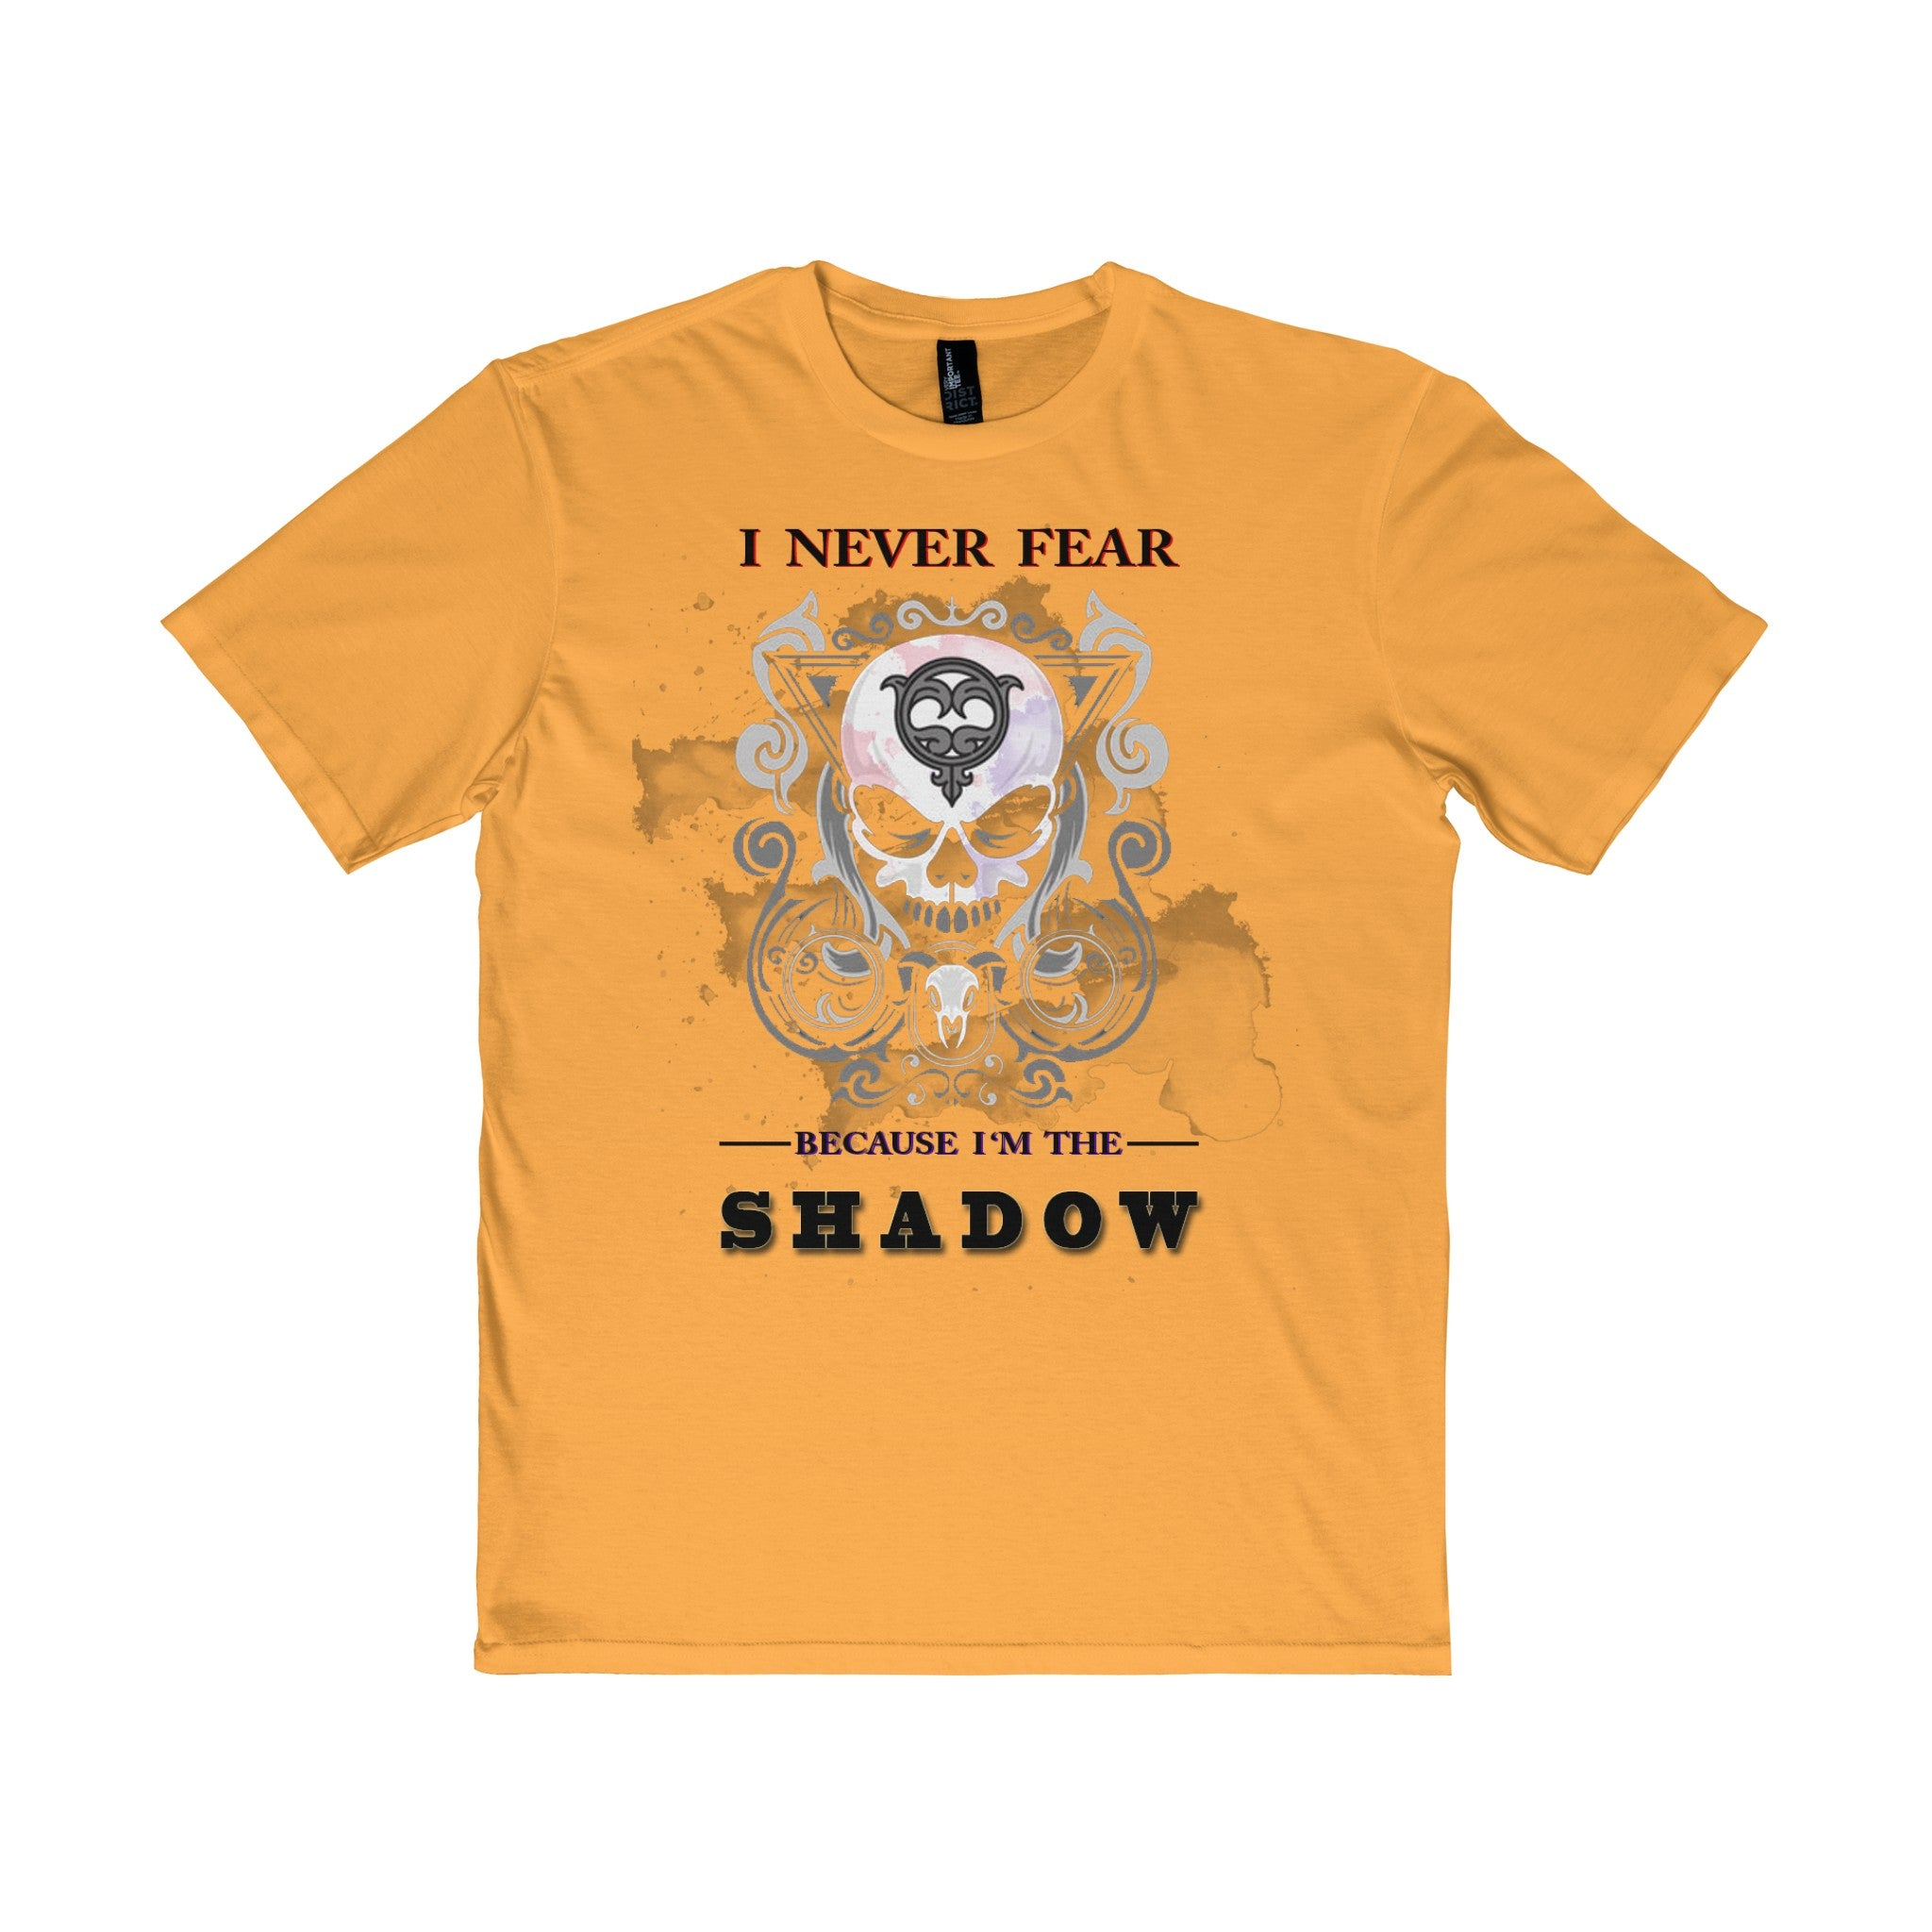 NEVER FEAR THE SHADOW- PERFECT SHIRT GREAT DESIGN- GET ONE NOW  THEY ON SALE